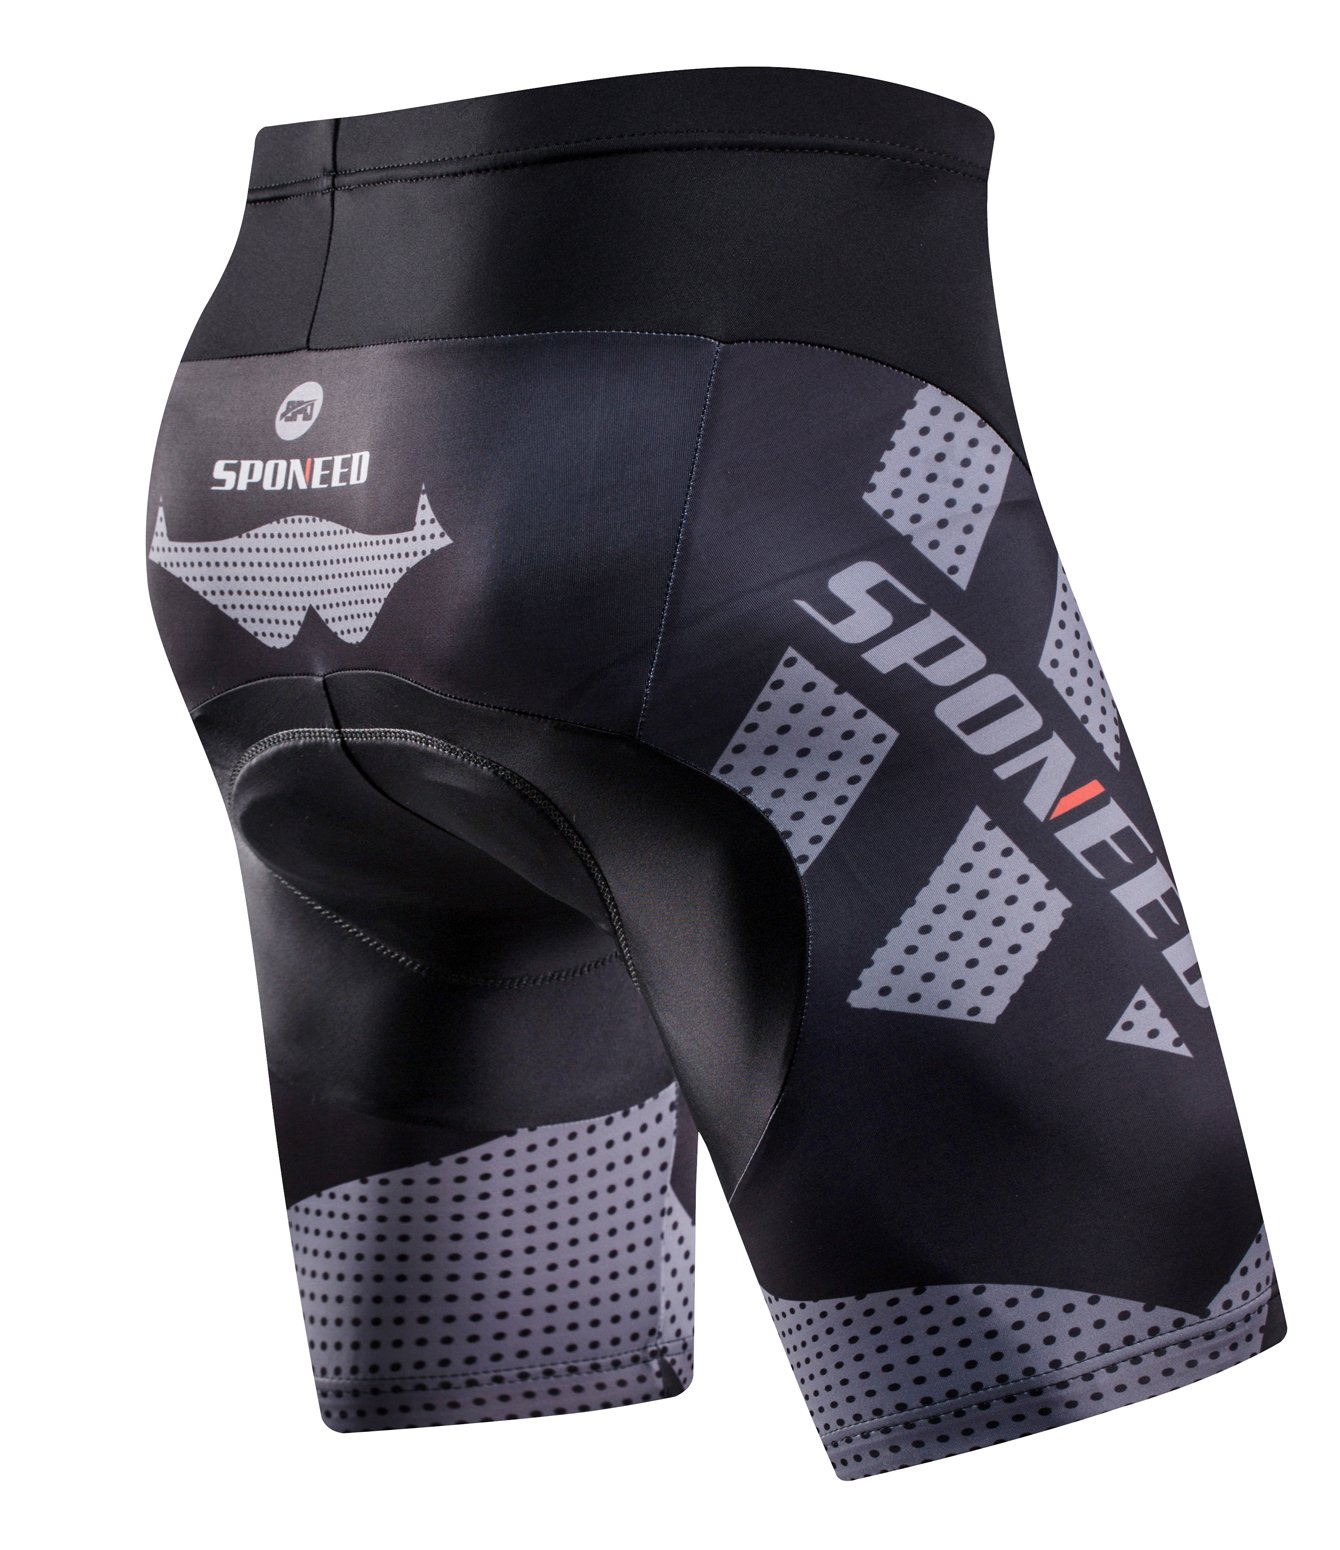 HOTER Padded Underwear For Biking Women Silicone Gel Comfortable Underpants